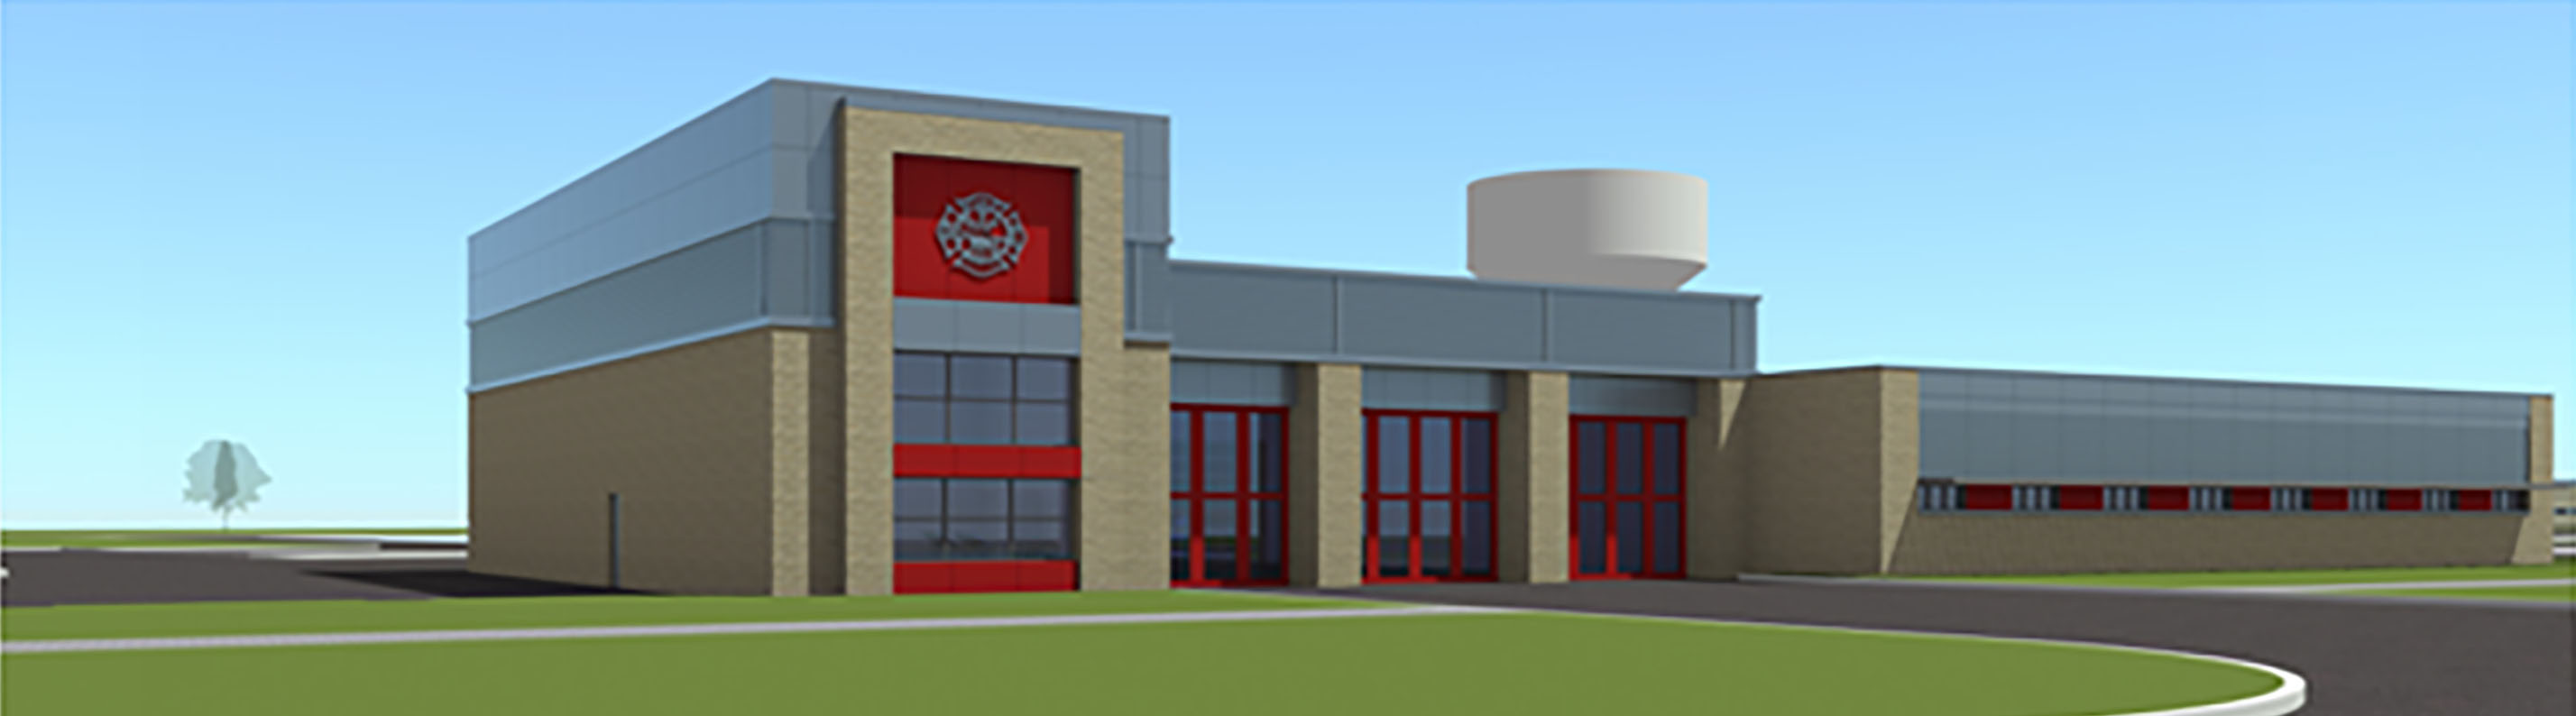 fire station image from left